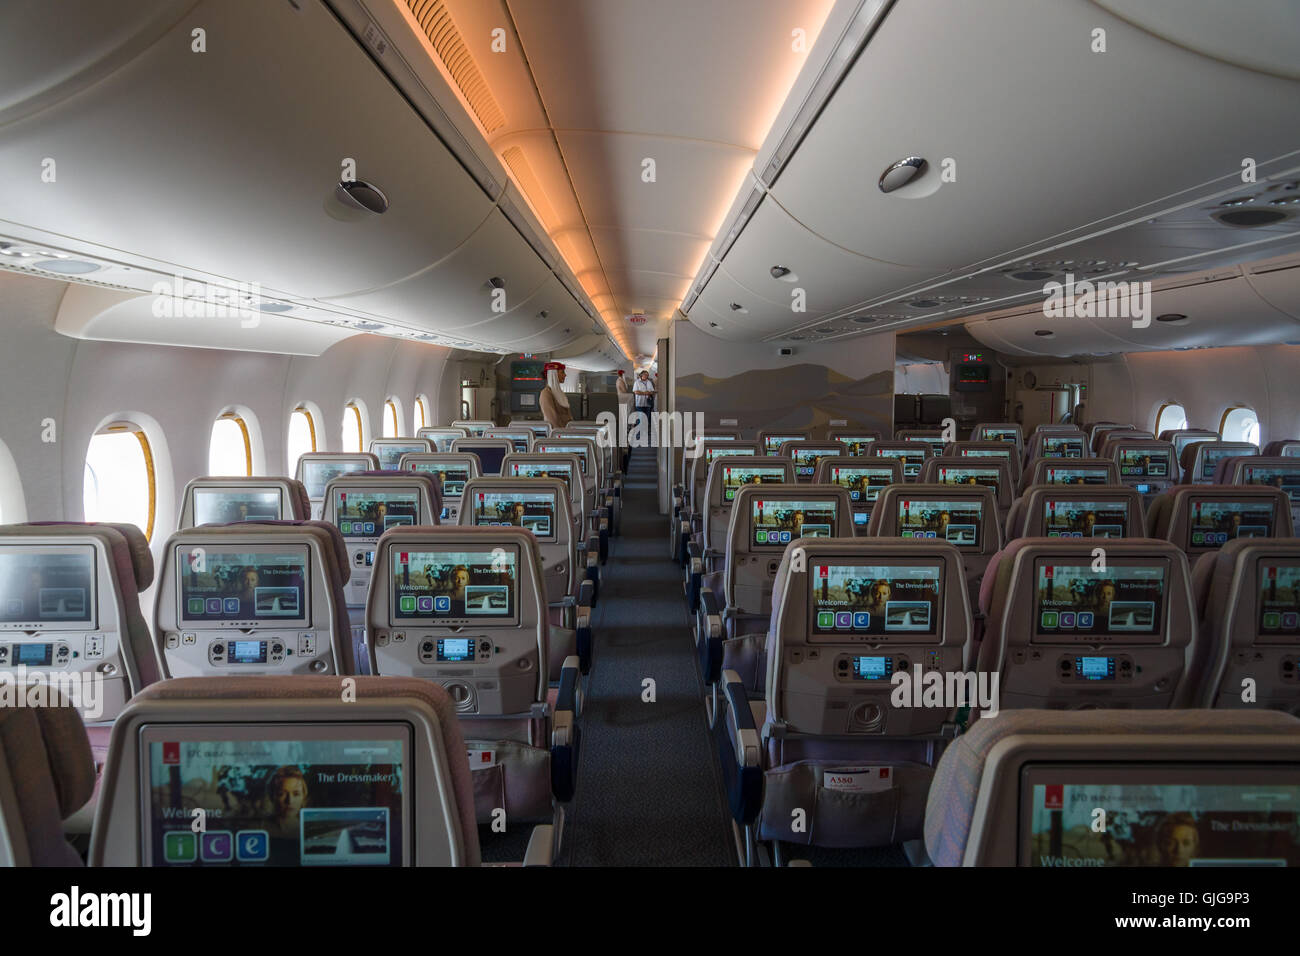 Interieur Airbus A380 A380 Airbus Interior Stock Photos And A380 Airbus Interior